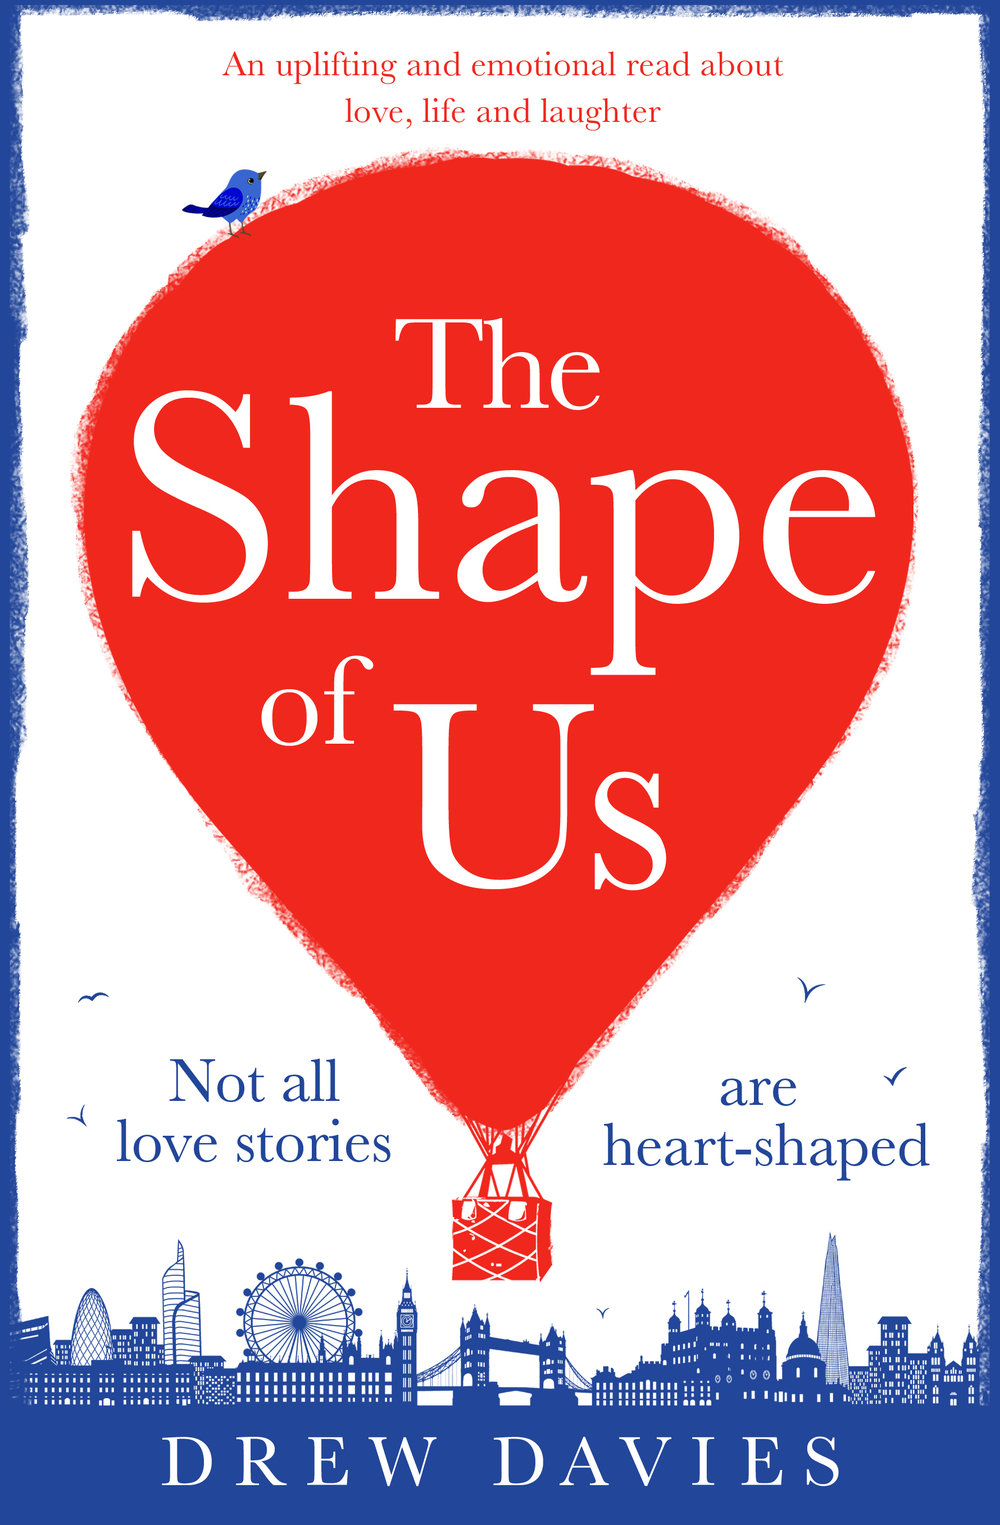 THE SHAPE OF US  Romantic comedy, Bookouture, 331 pages, Nov 2018   One day in London…    Daisy  is rushing to work when a stranger on a bicycle almost knocks her over – and then asks for her number.   Dylan , a teenage boy, lives with an illness which means he can't leave his bedroom – but which hasn't stopped him from falling hopelessly in love.   JoJo , a wife in her sixties, is trying desperately to win her beloved husband back from his mistress.   Adam  has recently lost his job and lies to his housemate about where he goes every day.  These four total strangers – whose paths cross in the charming city of London – have one thing in common. They are all lonely souls looking for love. But what are the chances of them actually finding it?